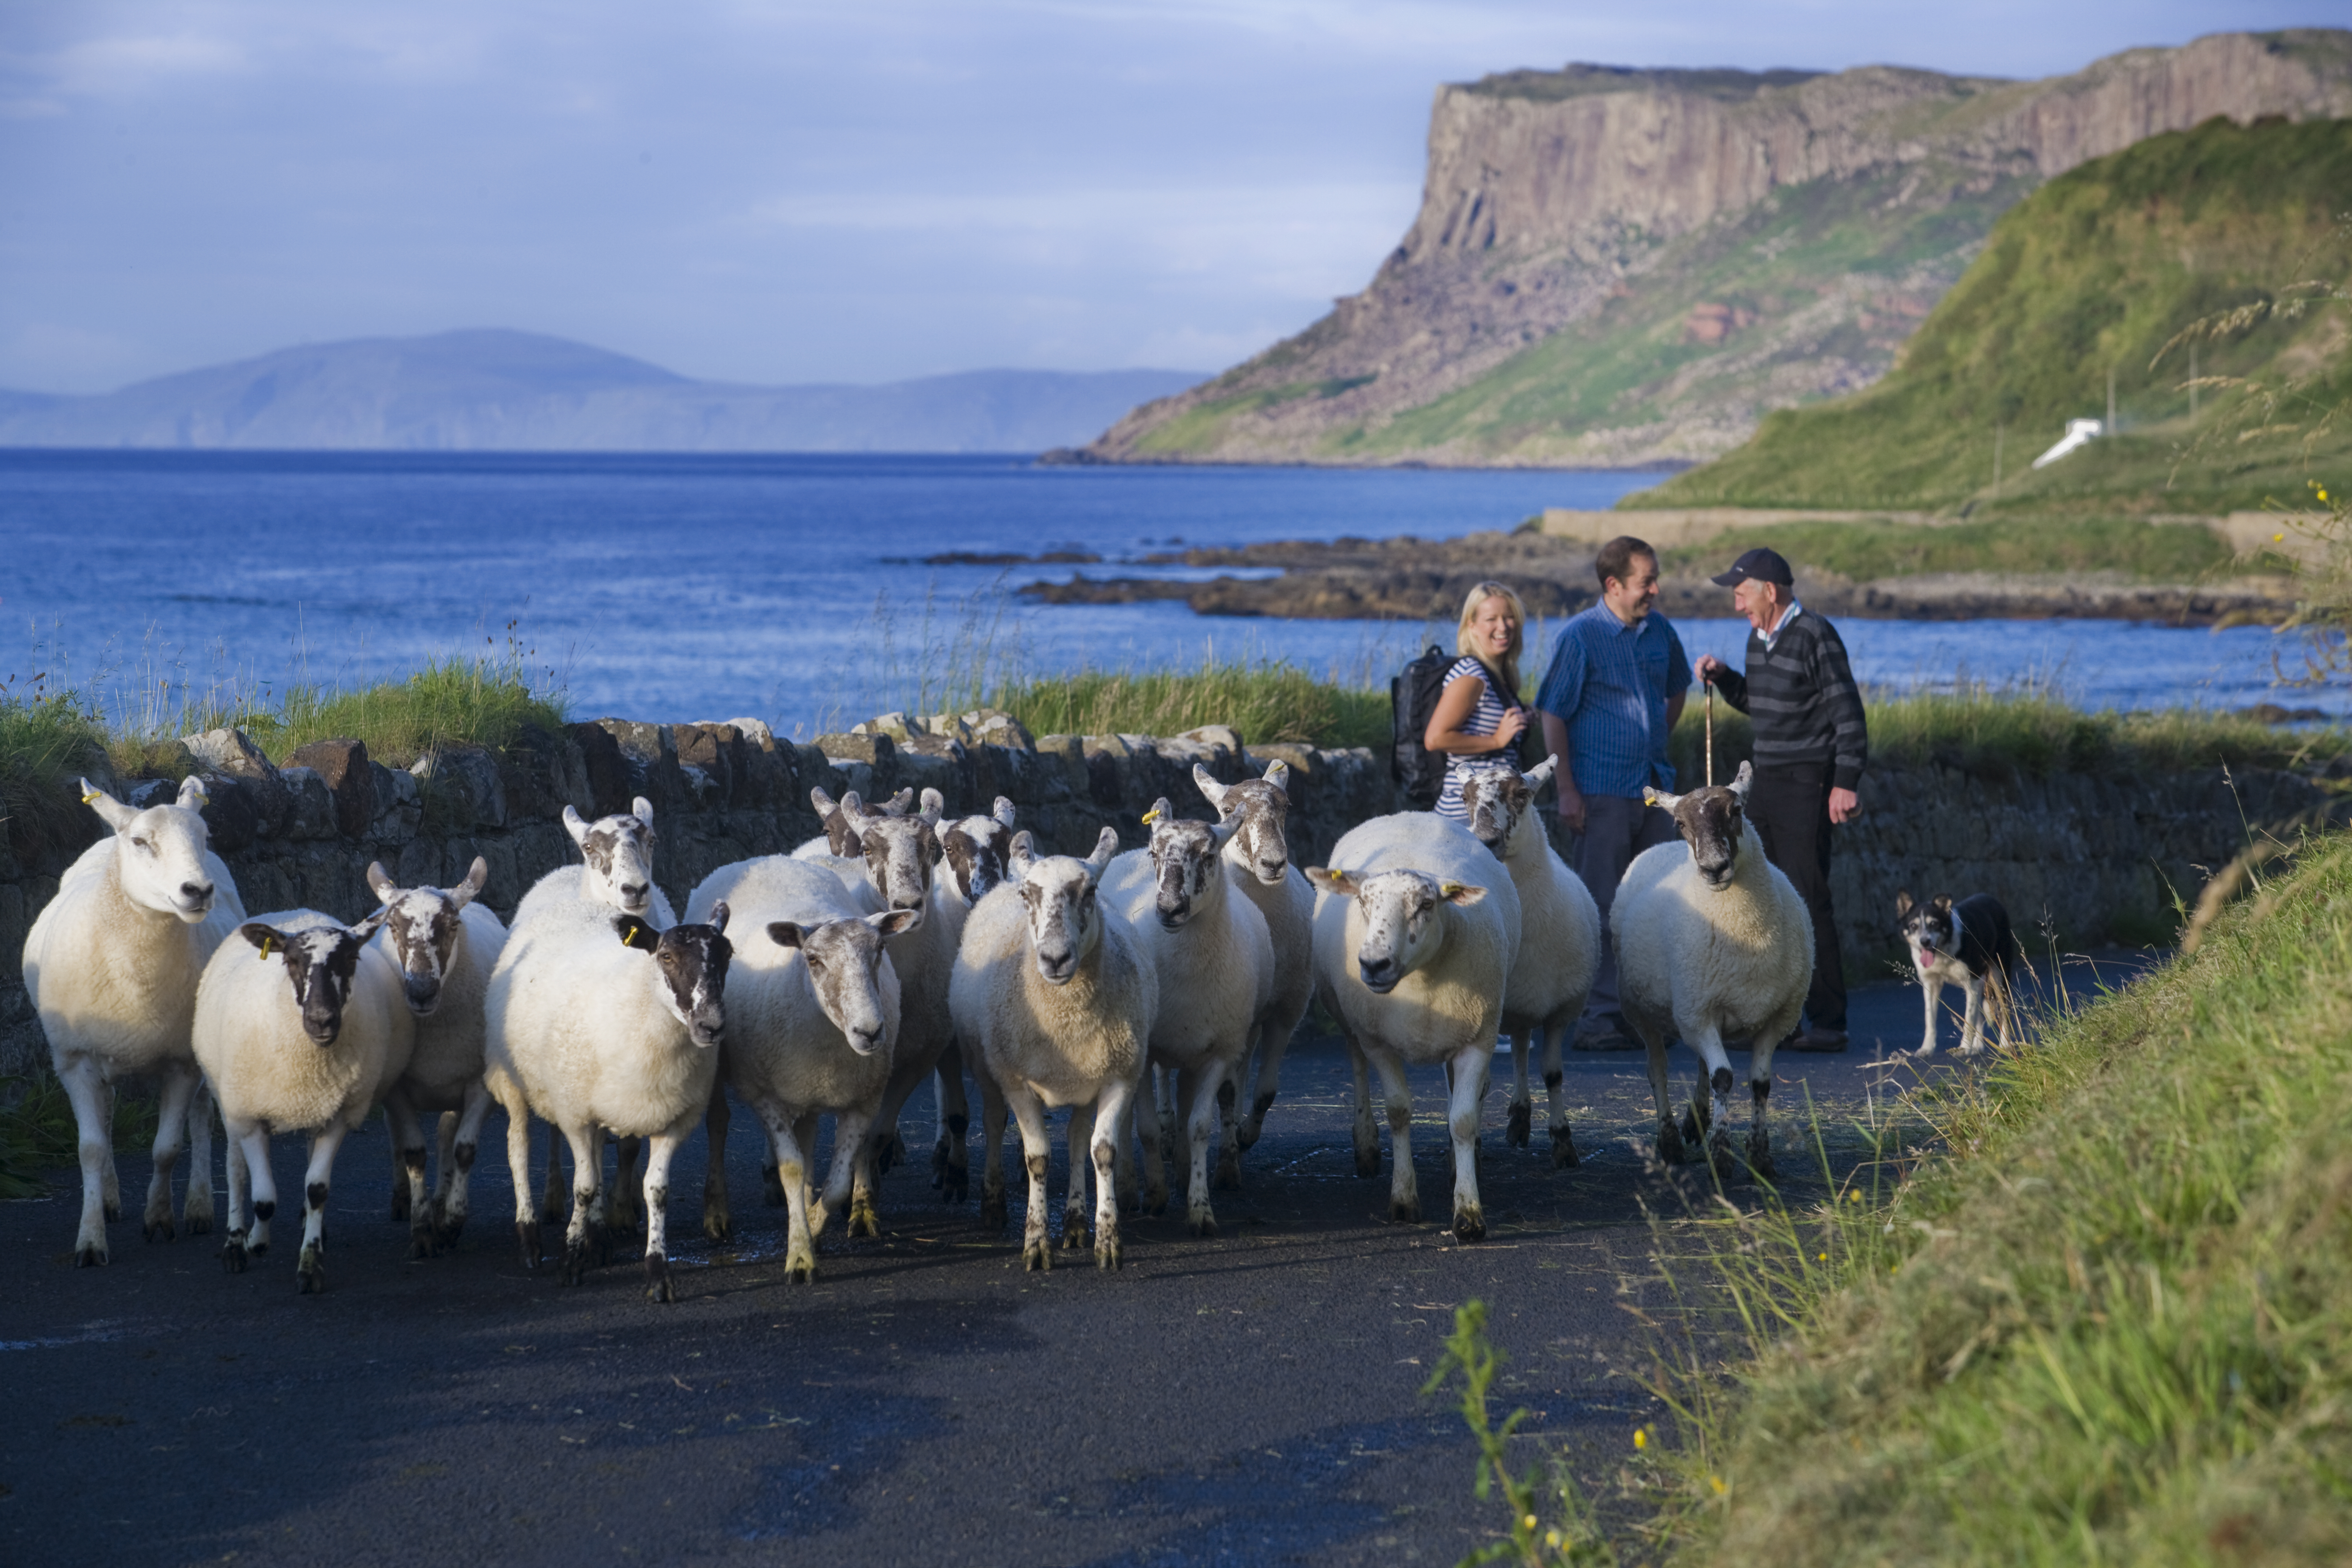 Ballycastle Sheep